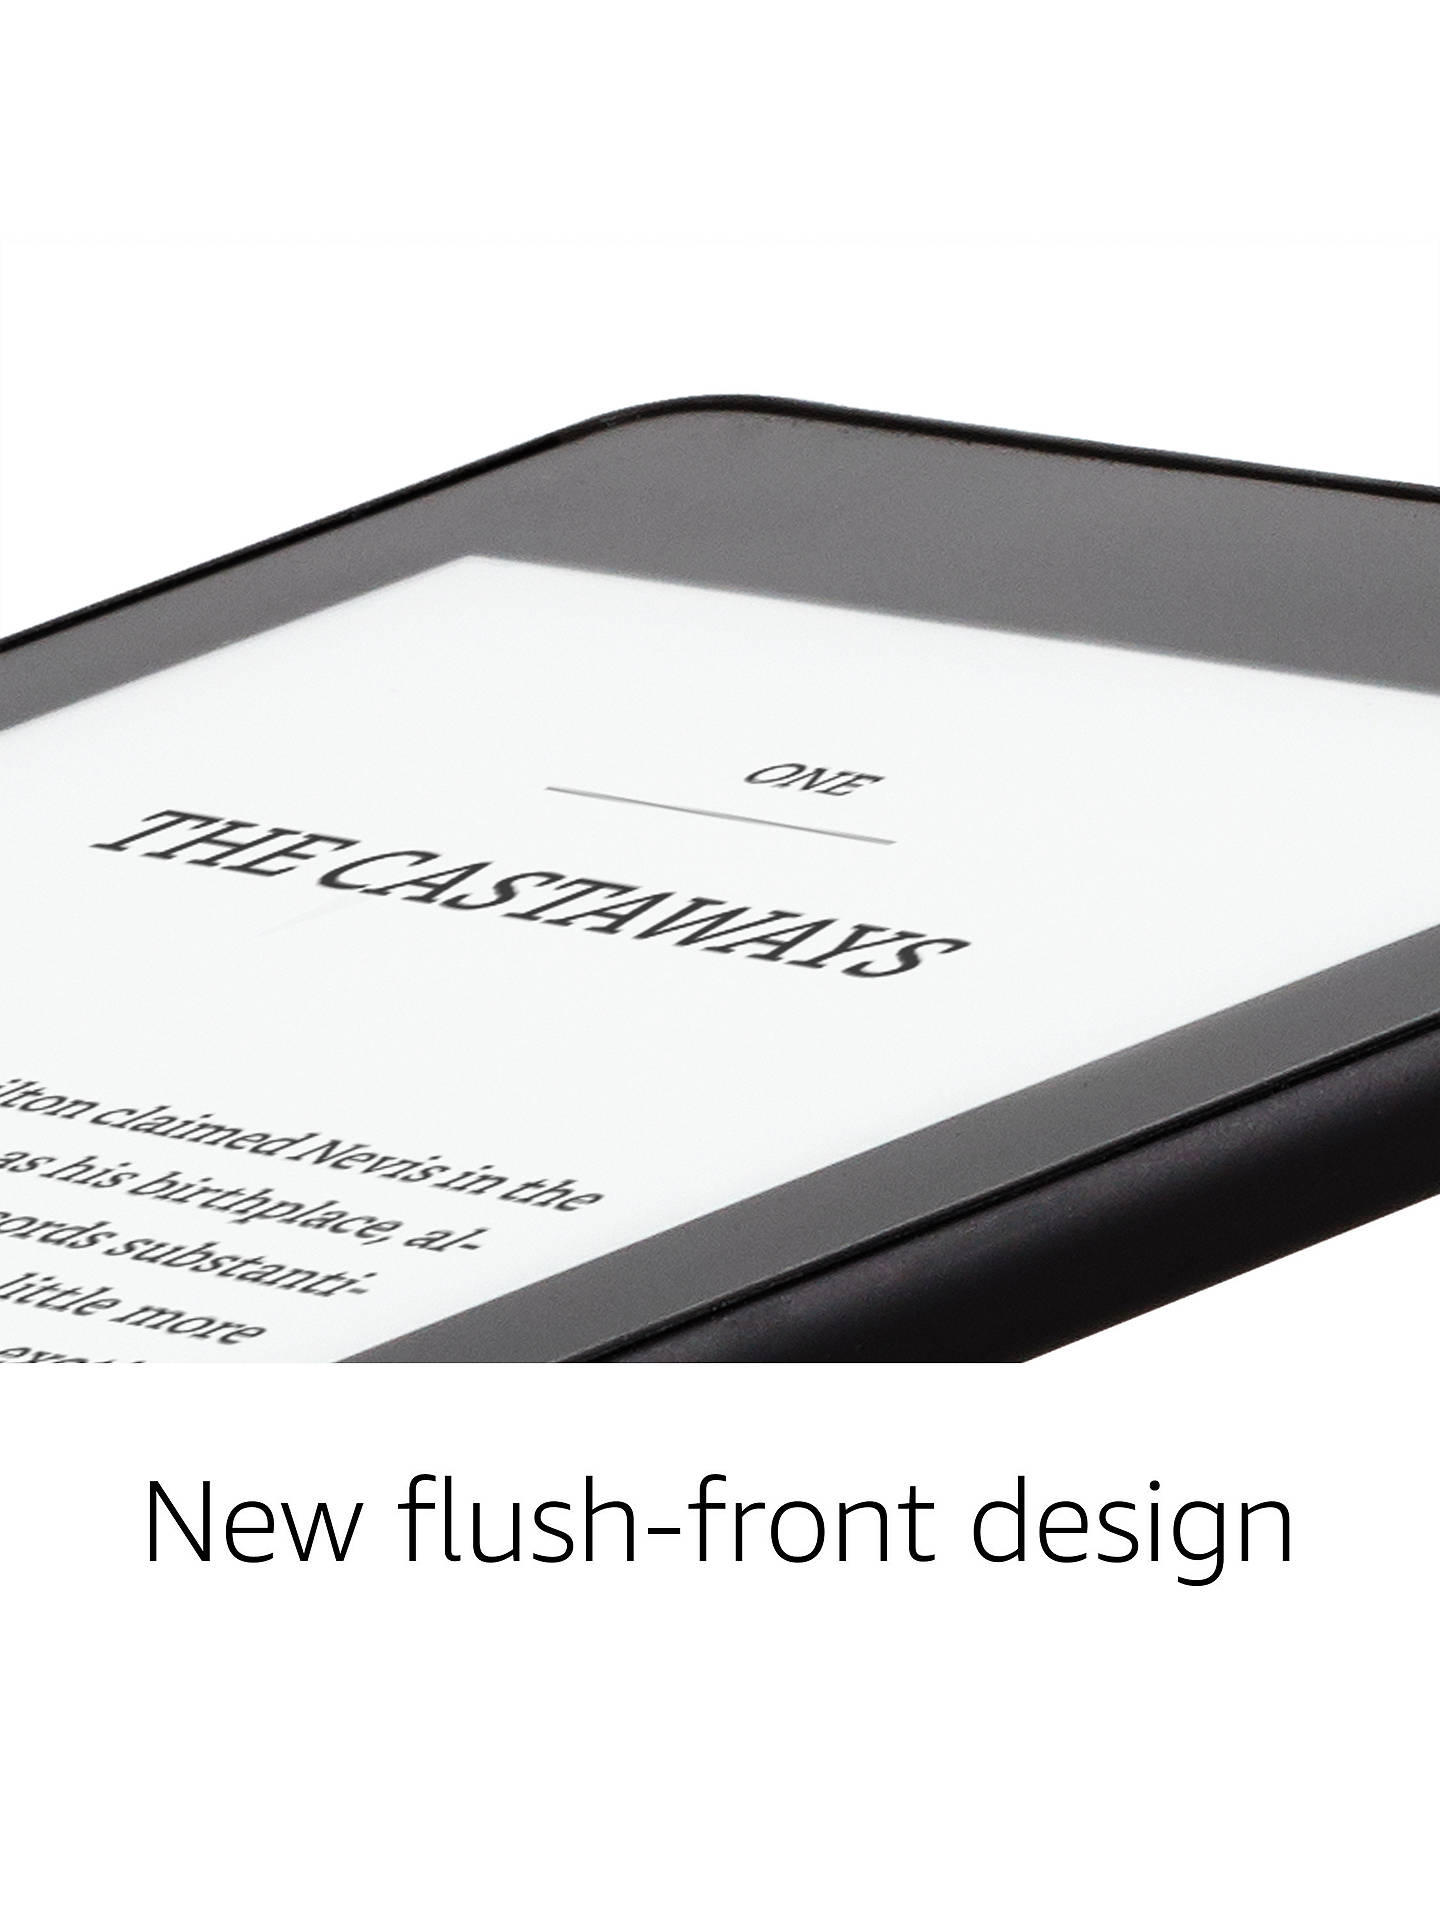 "Buy Amazon Kindle Paperwhite, Waterproof eReader, 6"" High Resolution Illuminated Touch Screen, Built-In Audible, 8GB, with Special Offers, Black Online at johnlewis.com"